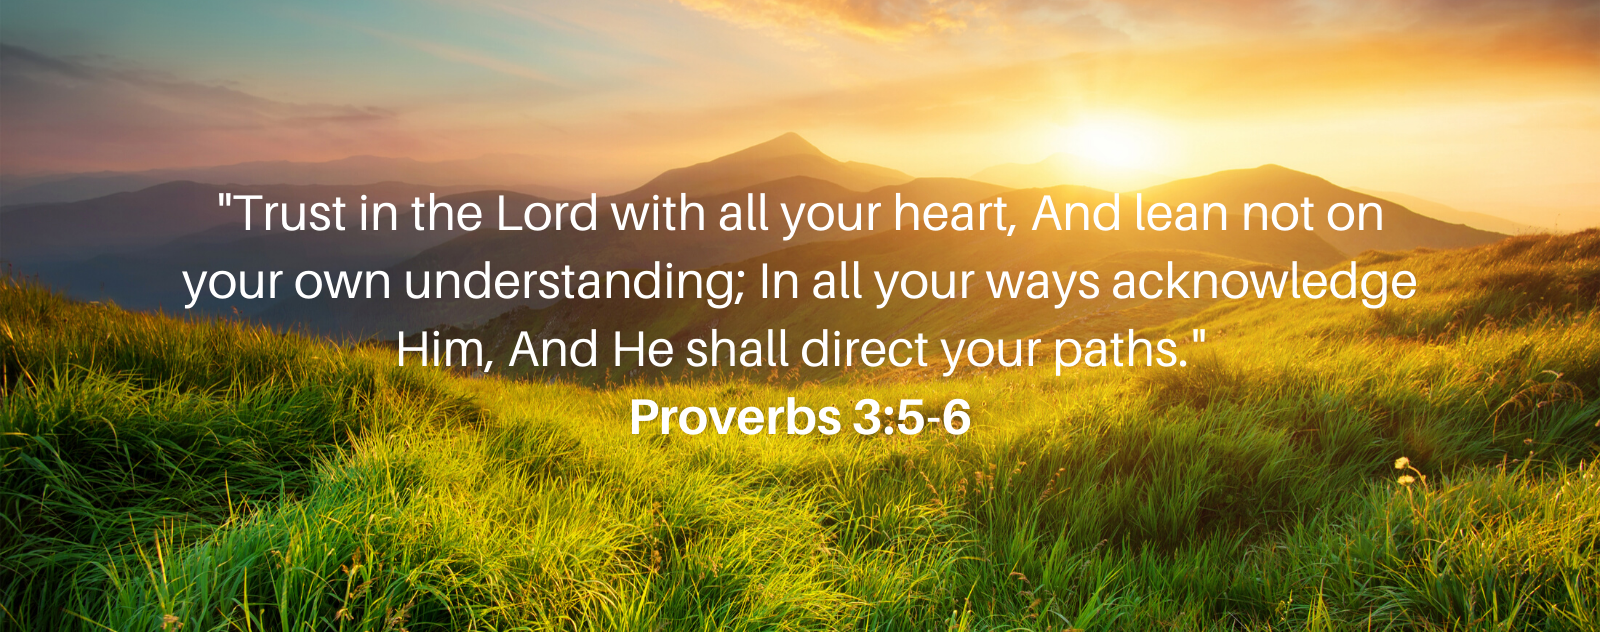 """Trust in the Lord"""" Proverbs 3:5-6 Meaning   Lord's Guidance"""